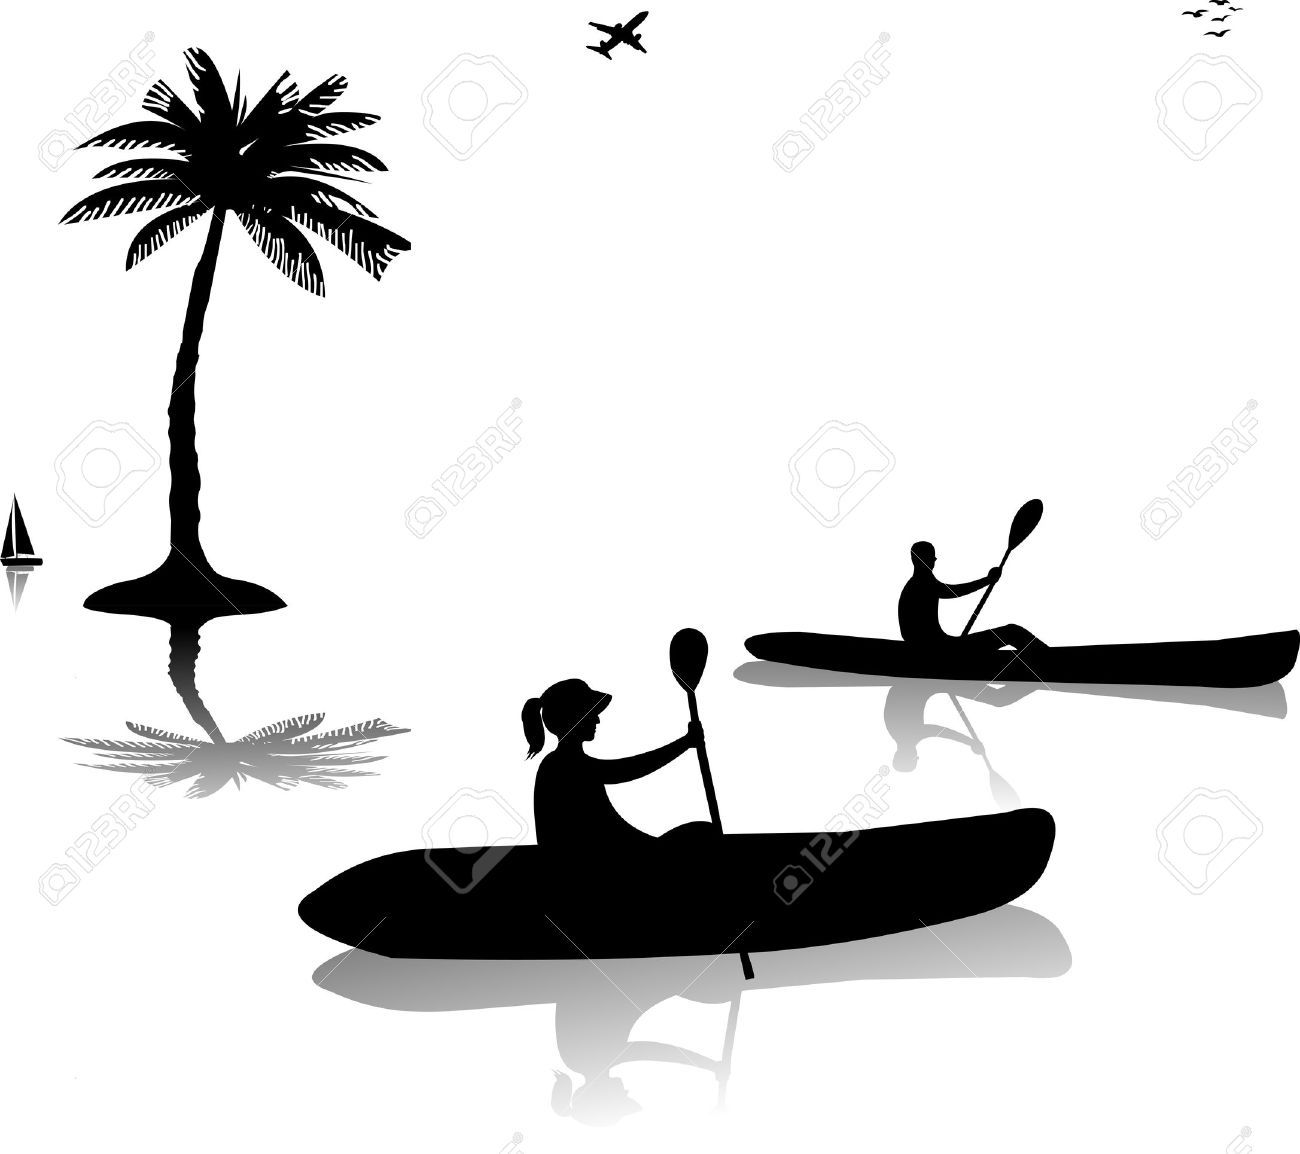 Silhouette clip art at. Boating clipart kayak